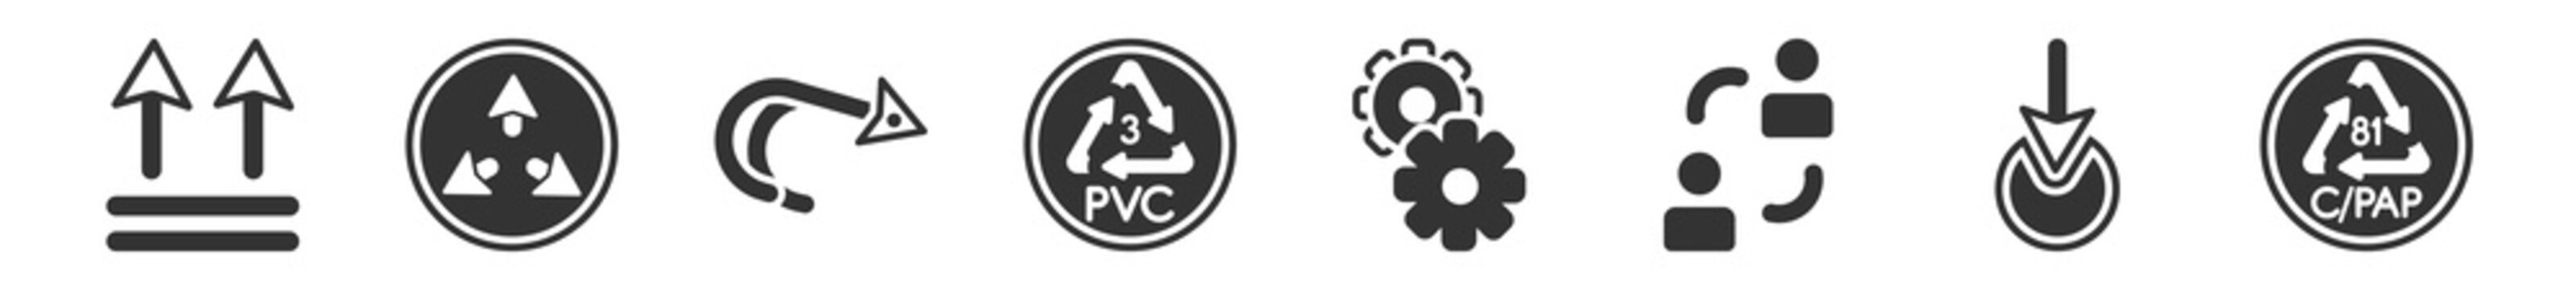 filled set of user interface icons. glyph vector icons such as up side, expand arrows, curve right arrow, 3 pvc, mechanic tool, c/pap 81. vector illustration.